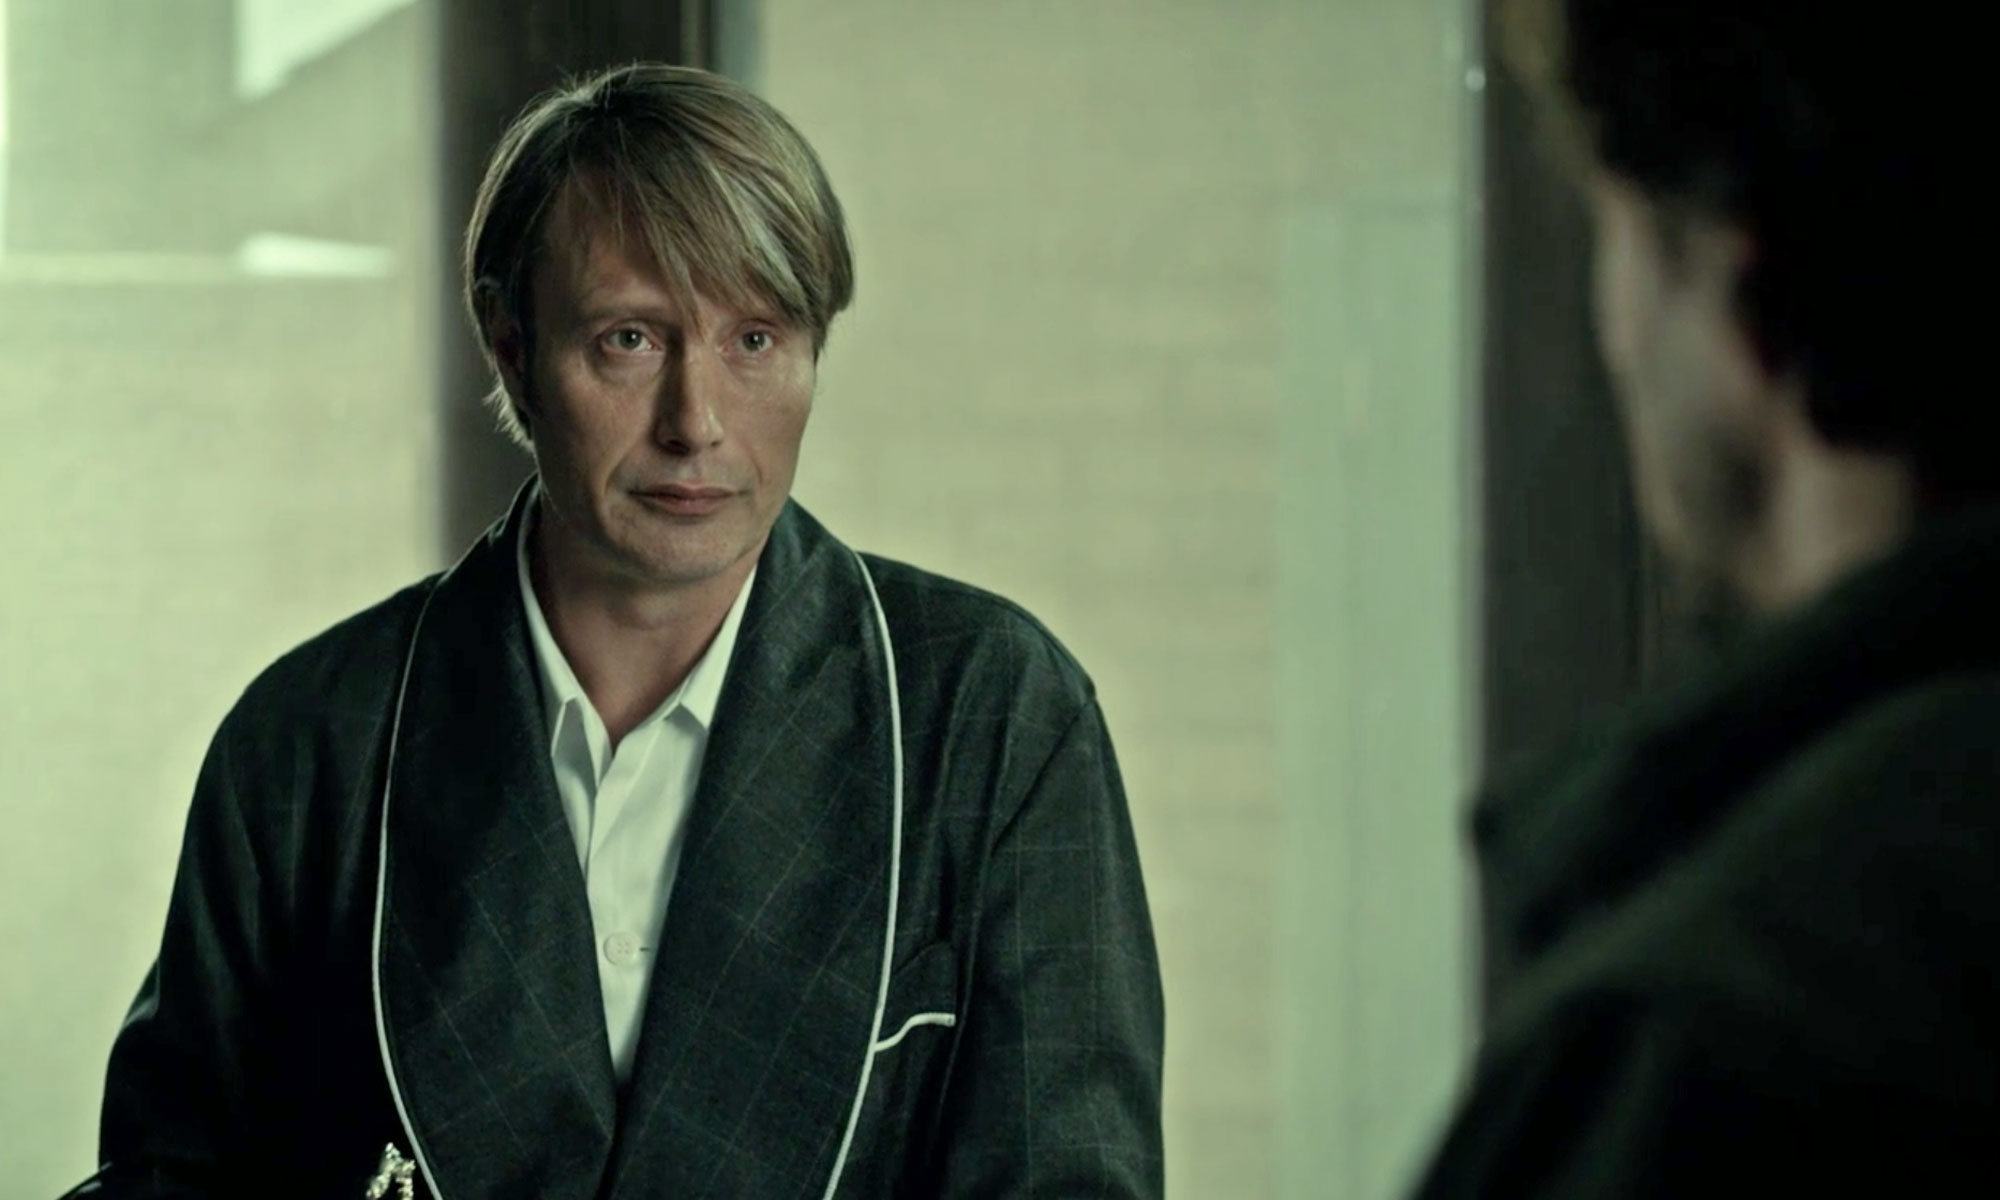 Shawl Dressing Gown from Hannibal